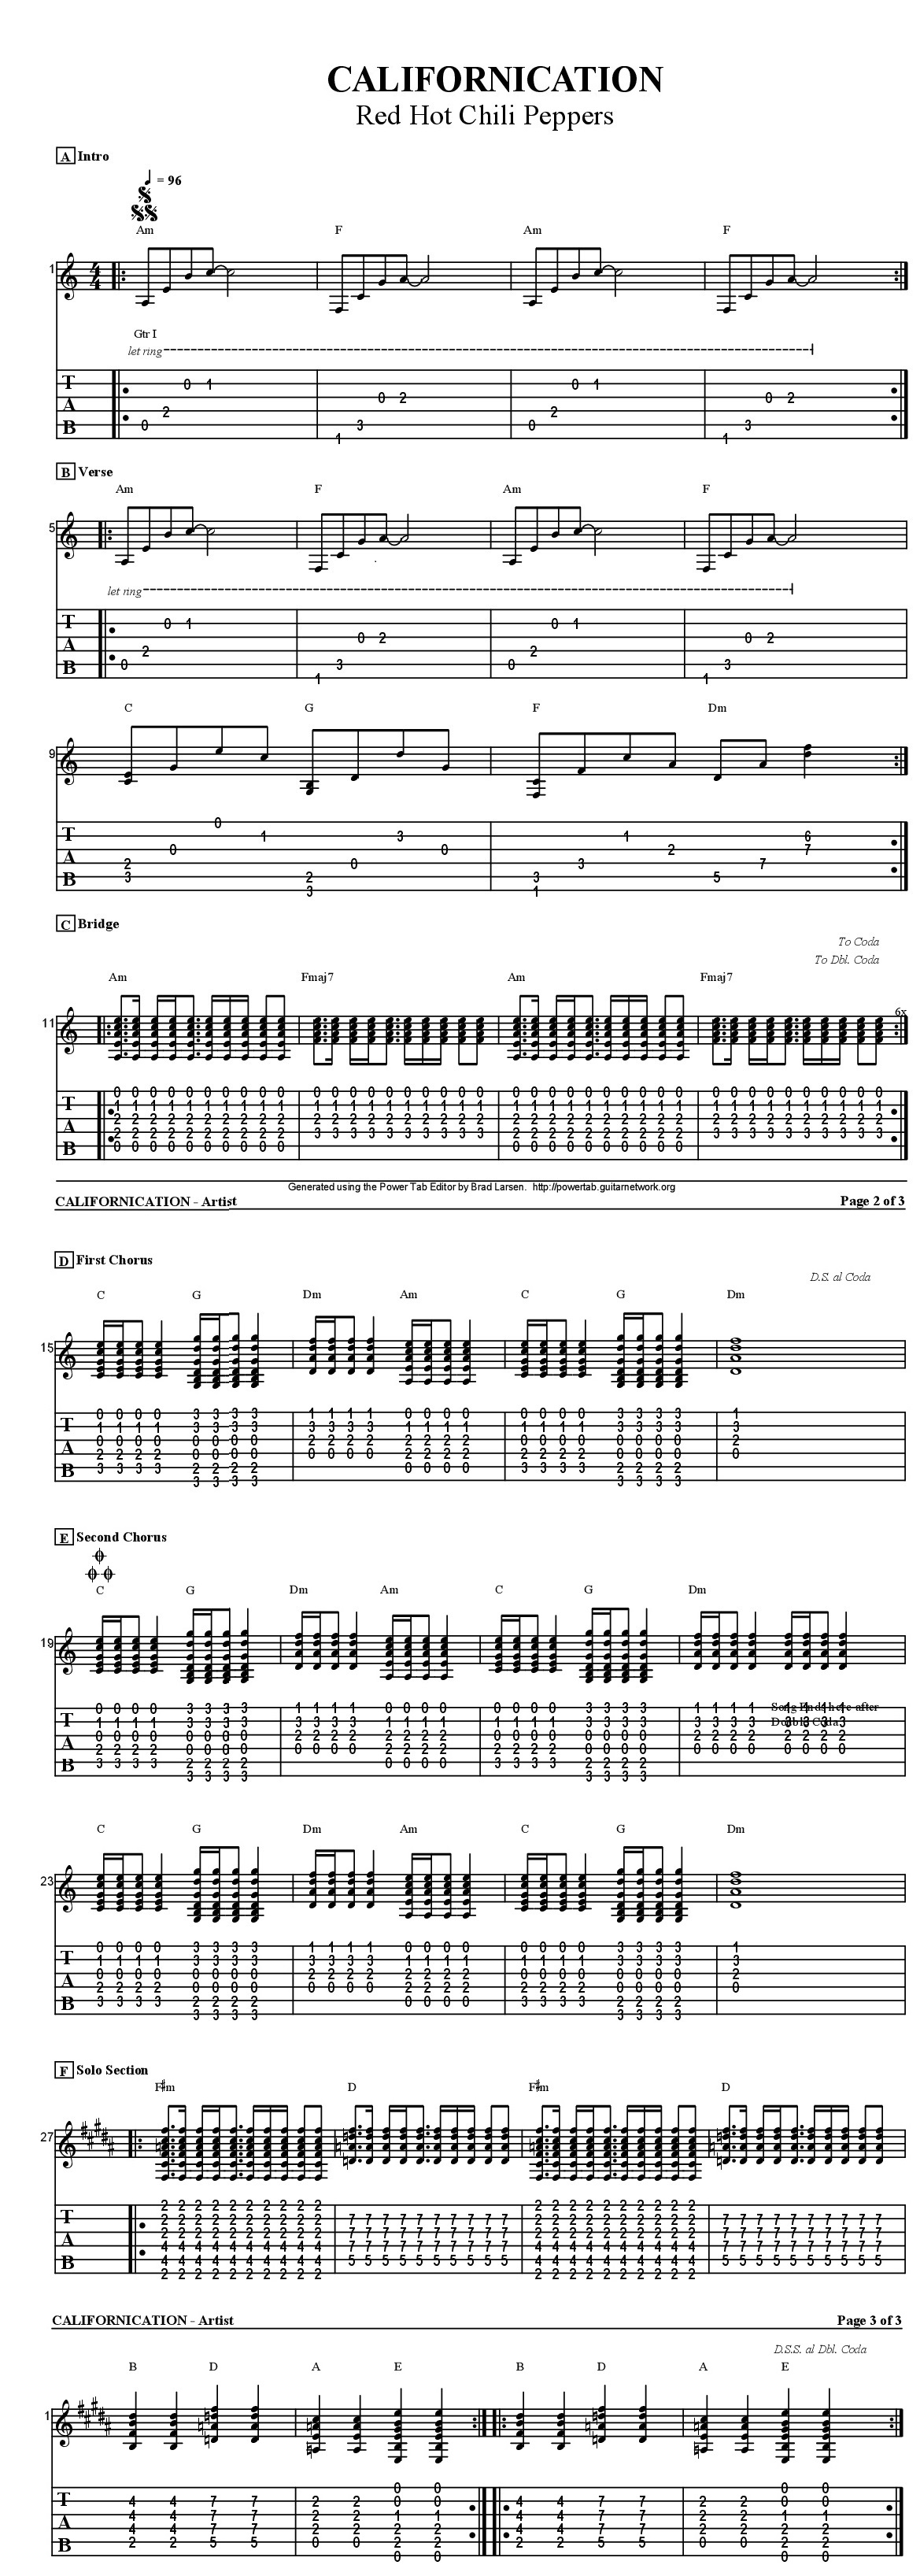 How To Play Californication By Red Hot Chilli Peppers